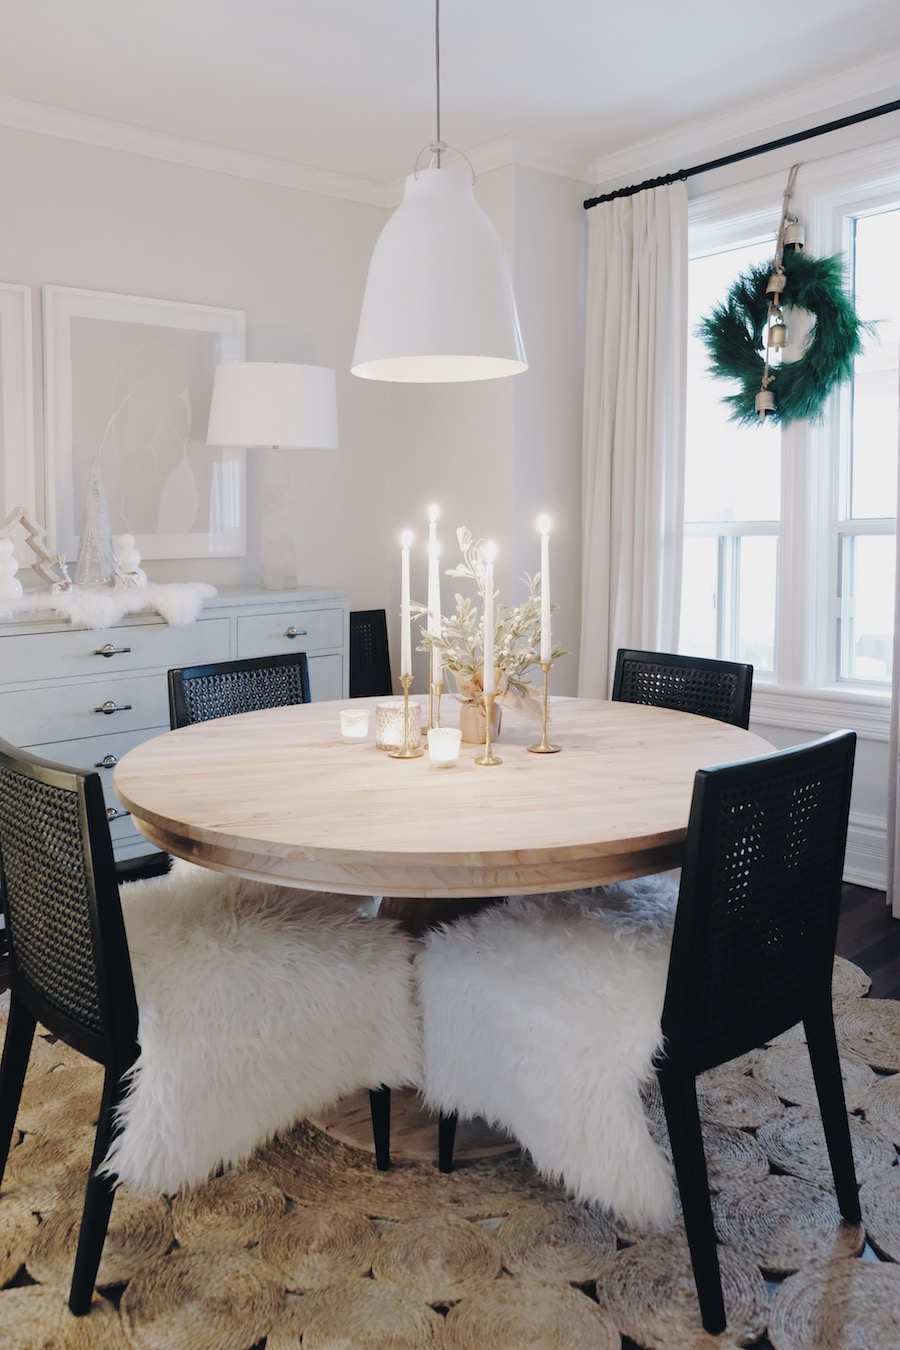 Ikea Inspired Spaces So Stunning They Will Make Your Jaw Drop Comfort Works Blog Design Inspirations